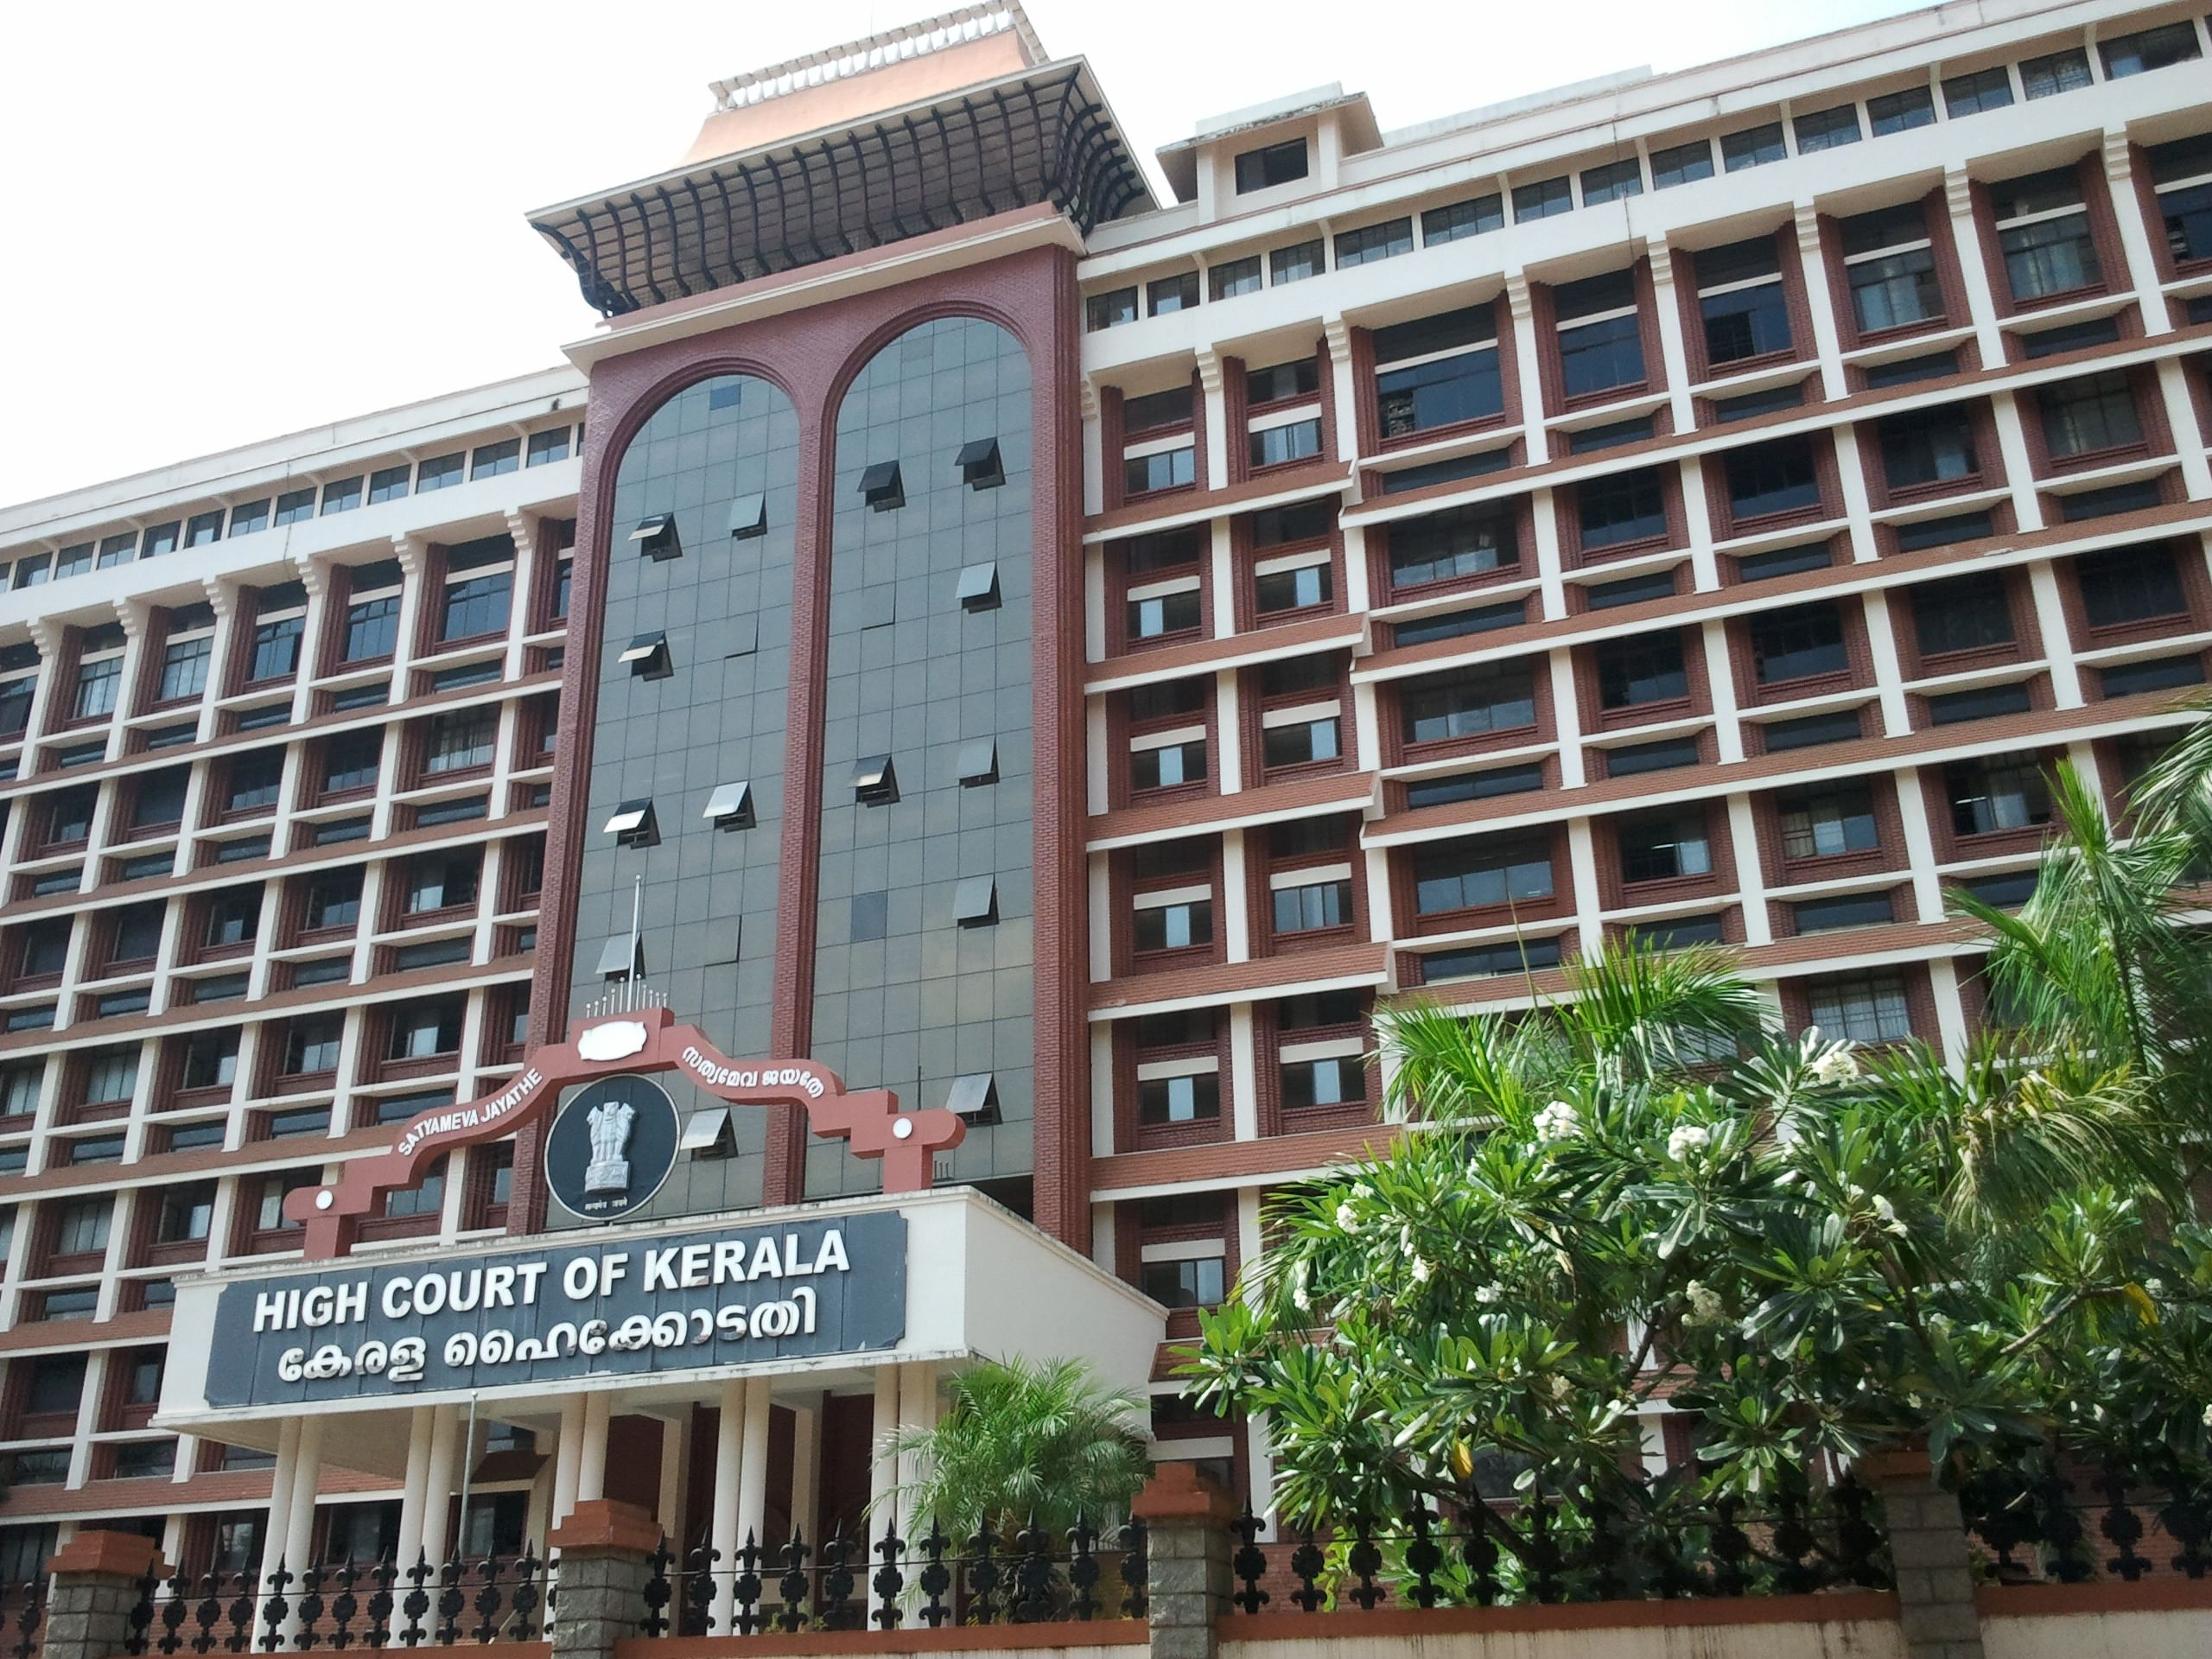 Kerala HIgh Court for representational purposes (Source: Wikimedia Commons)